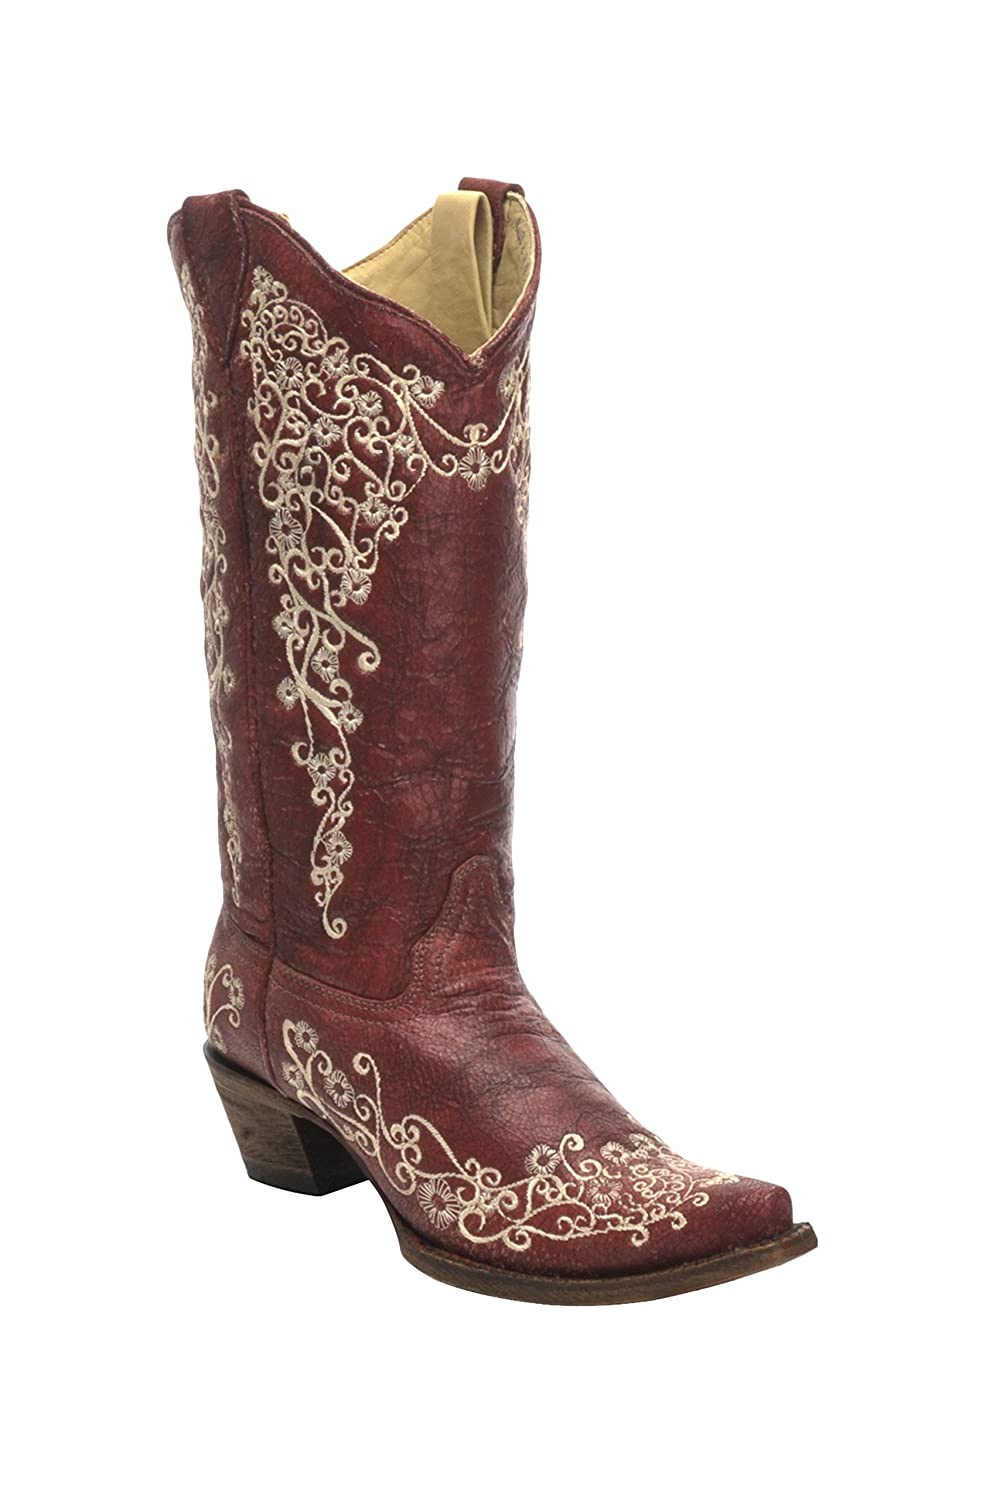 Corral Women's 11-inch Red/Beige Embroidery Snip Toe Pull-On Distressed Cowboy Boots - Sizes 5-12 B B071CPVRBY 6 B(M) US|Red